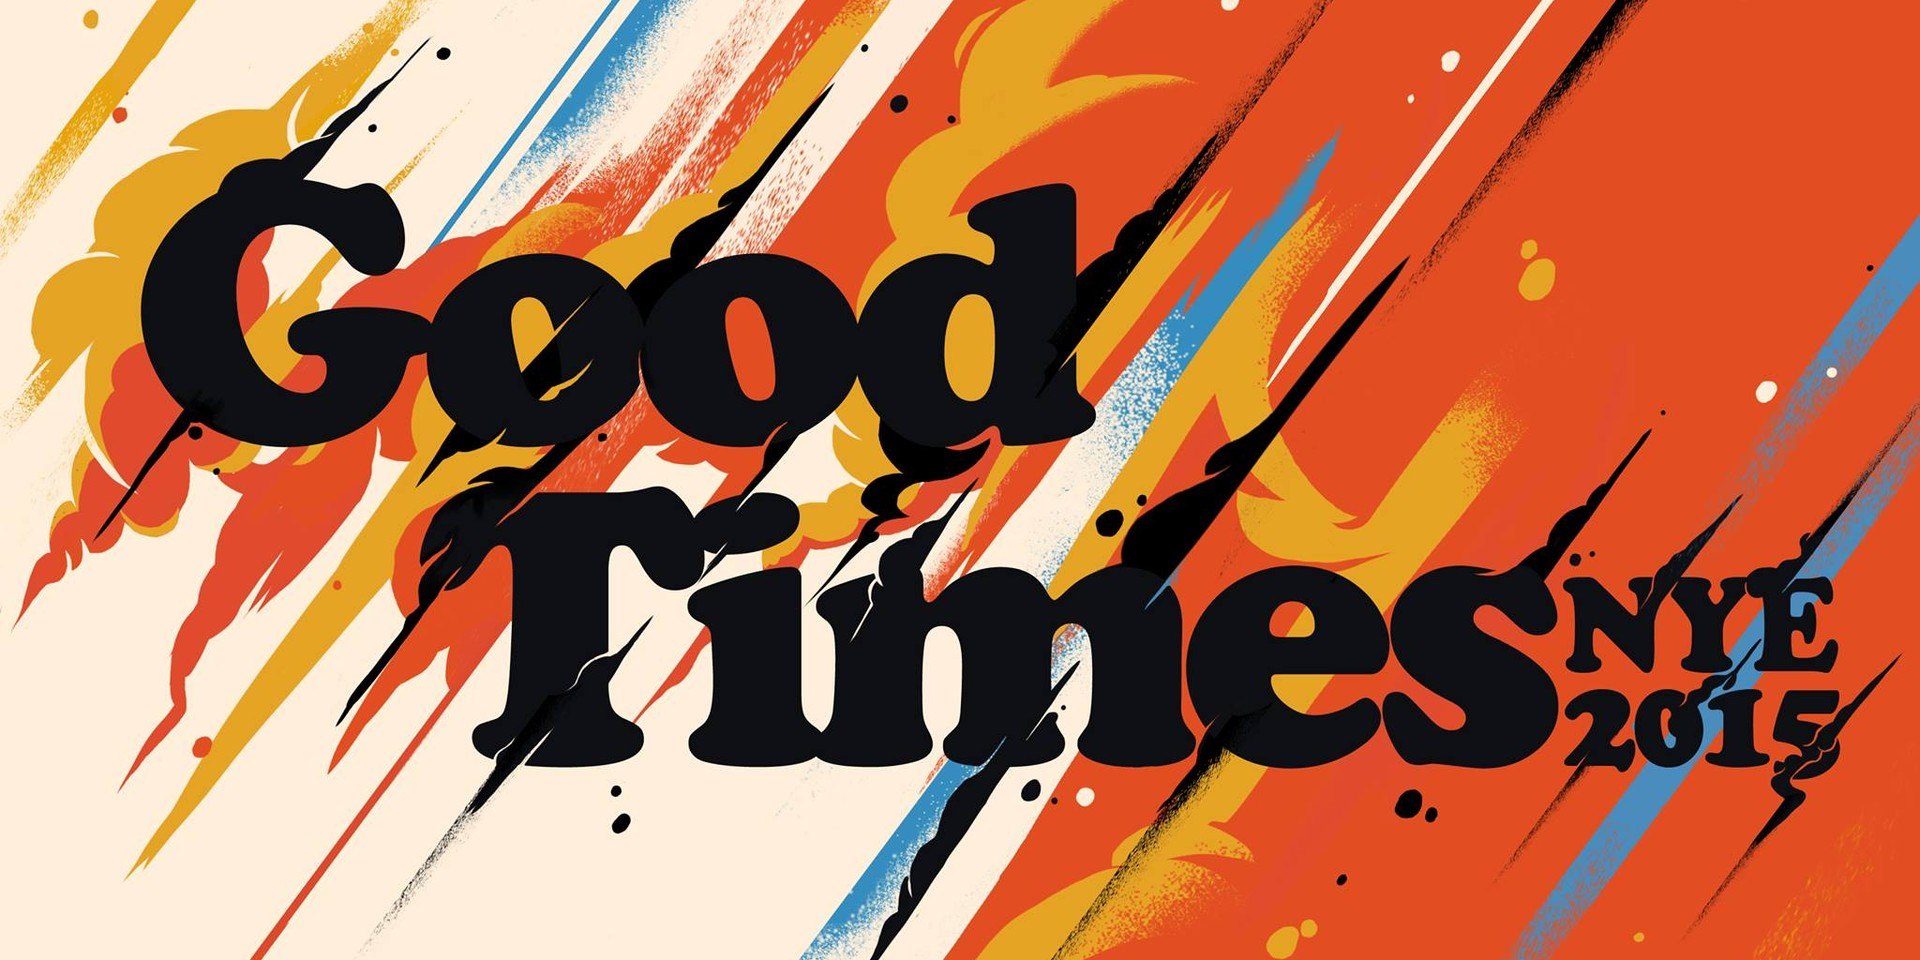 Good Times teams with Laneway, Dunce, Phyla & ATTAGIRL for an epic NYE party